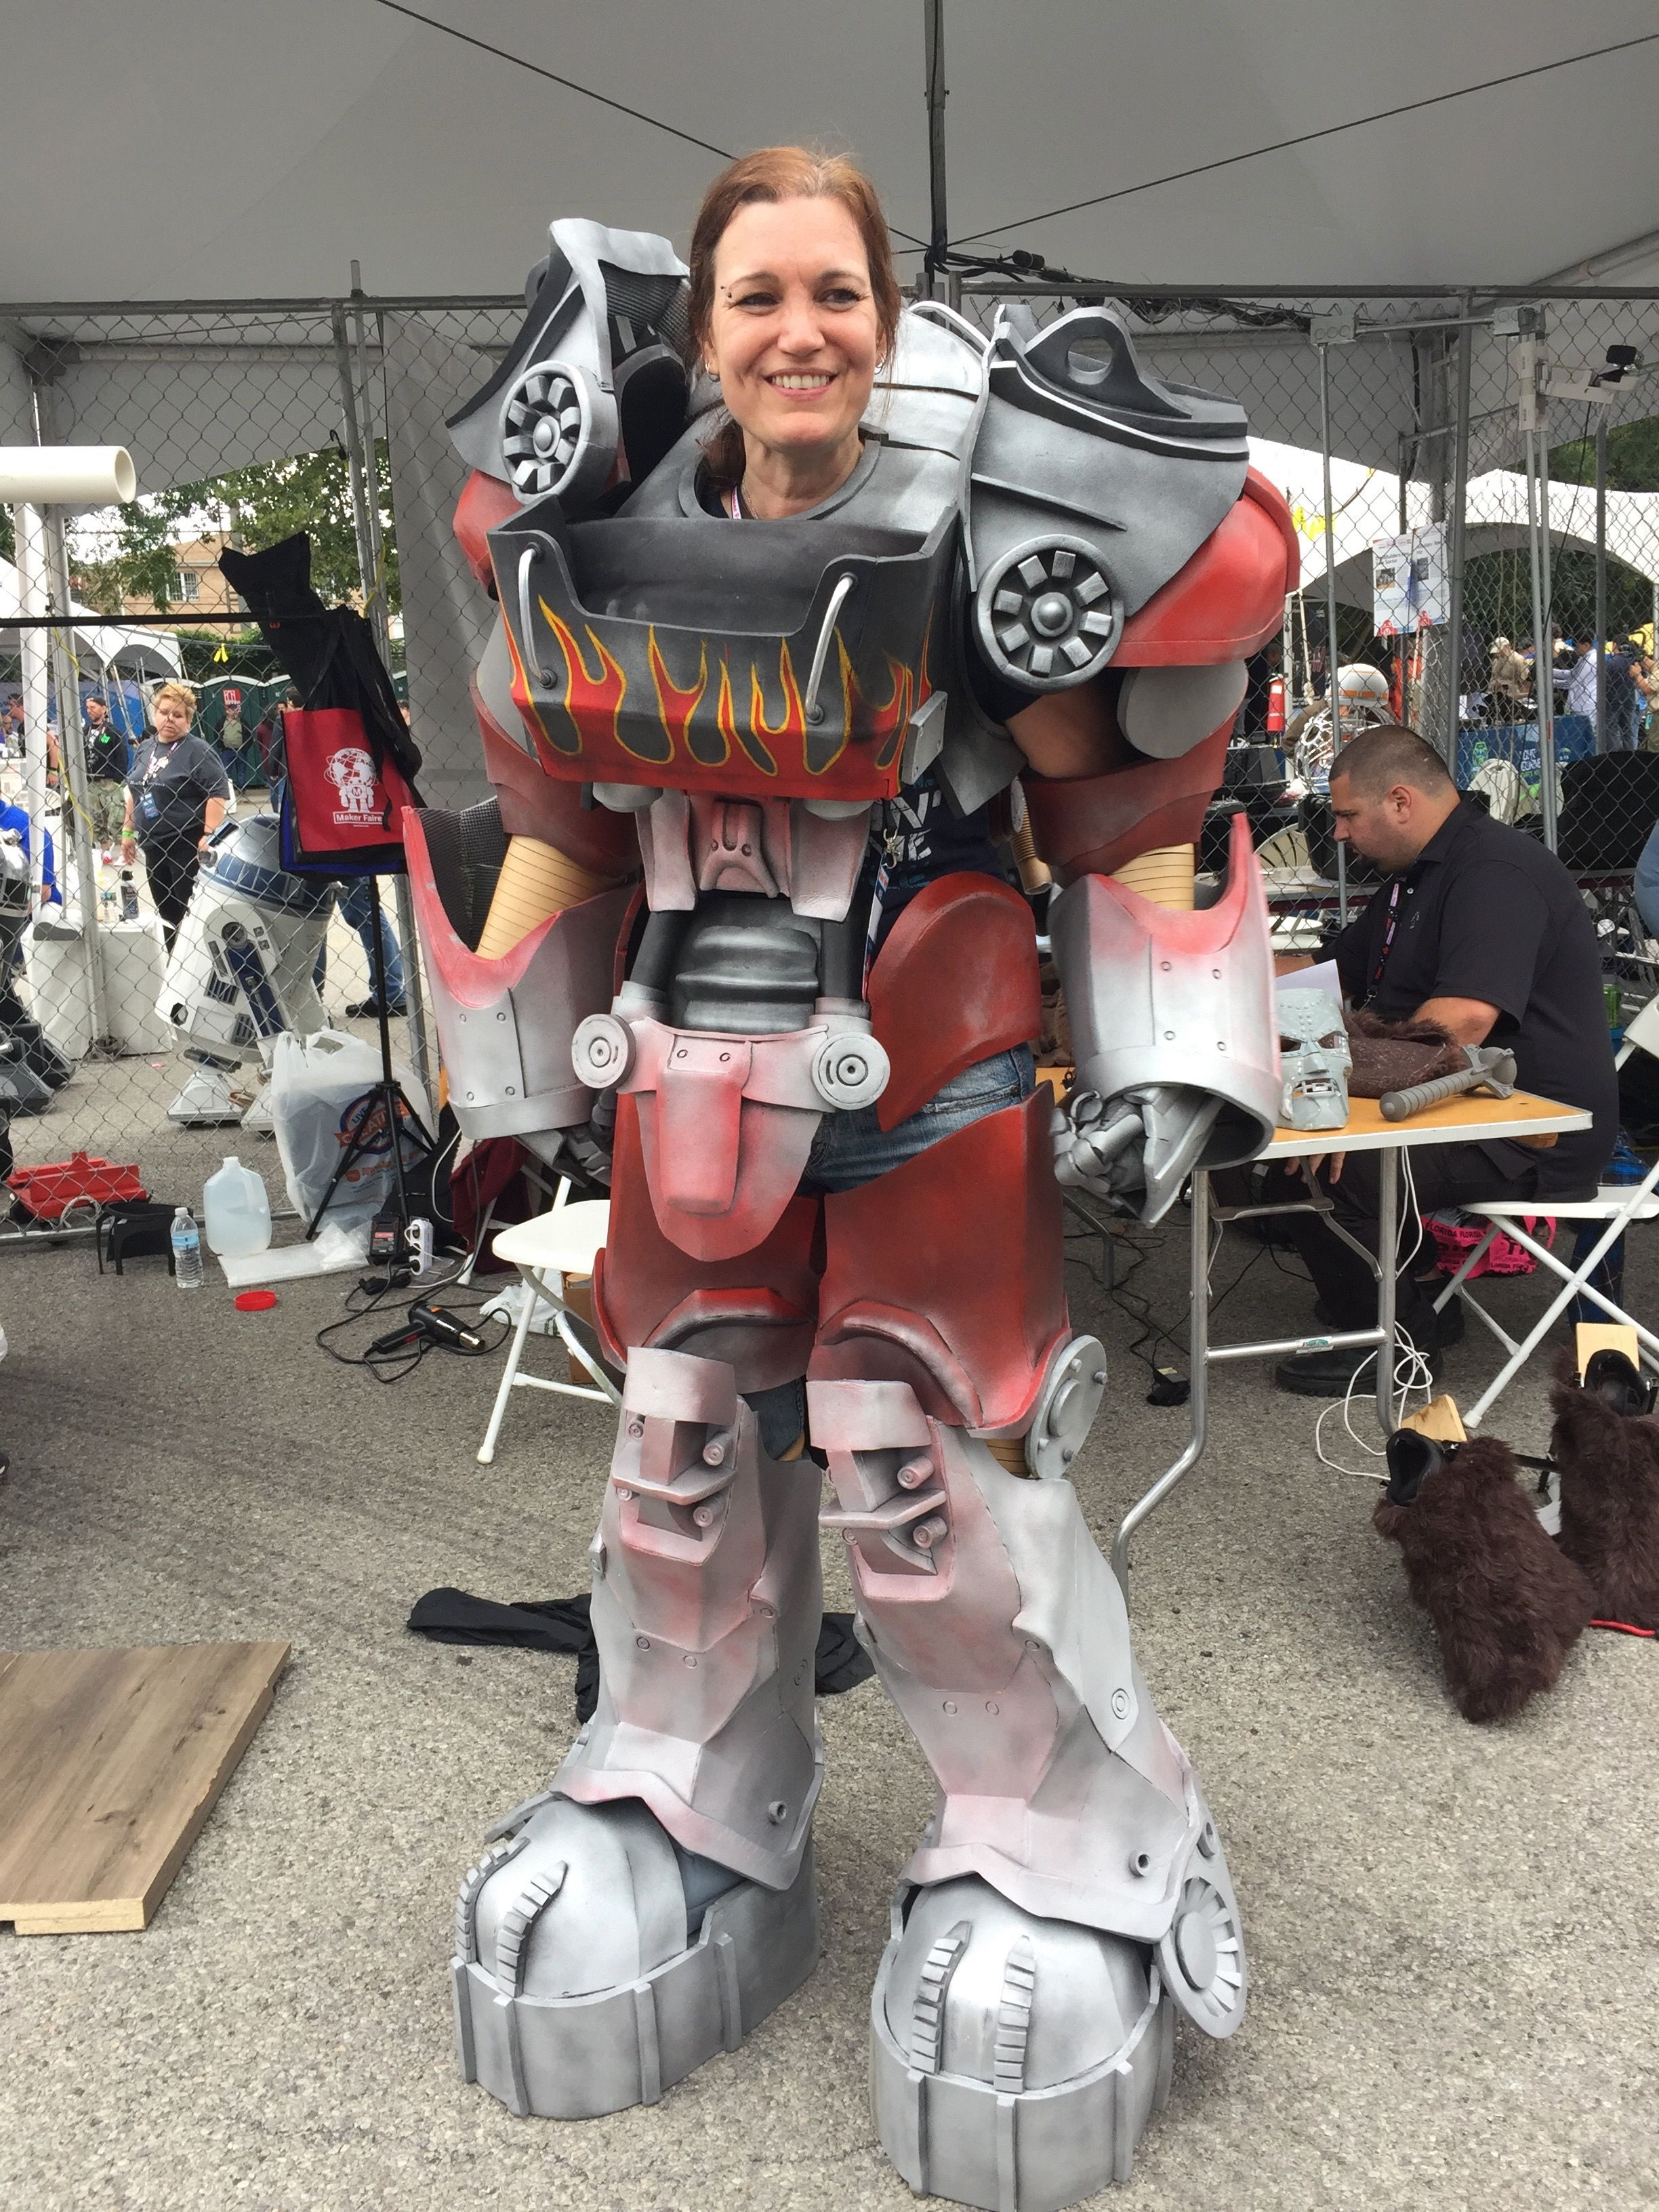 Check out these incredible 3D-printed cosplay props from the Maker Faire in NYC